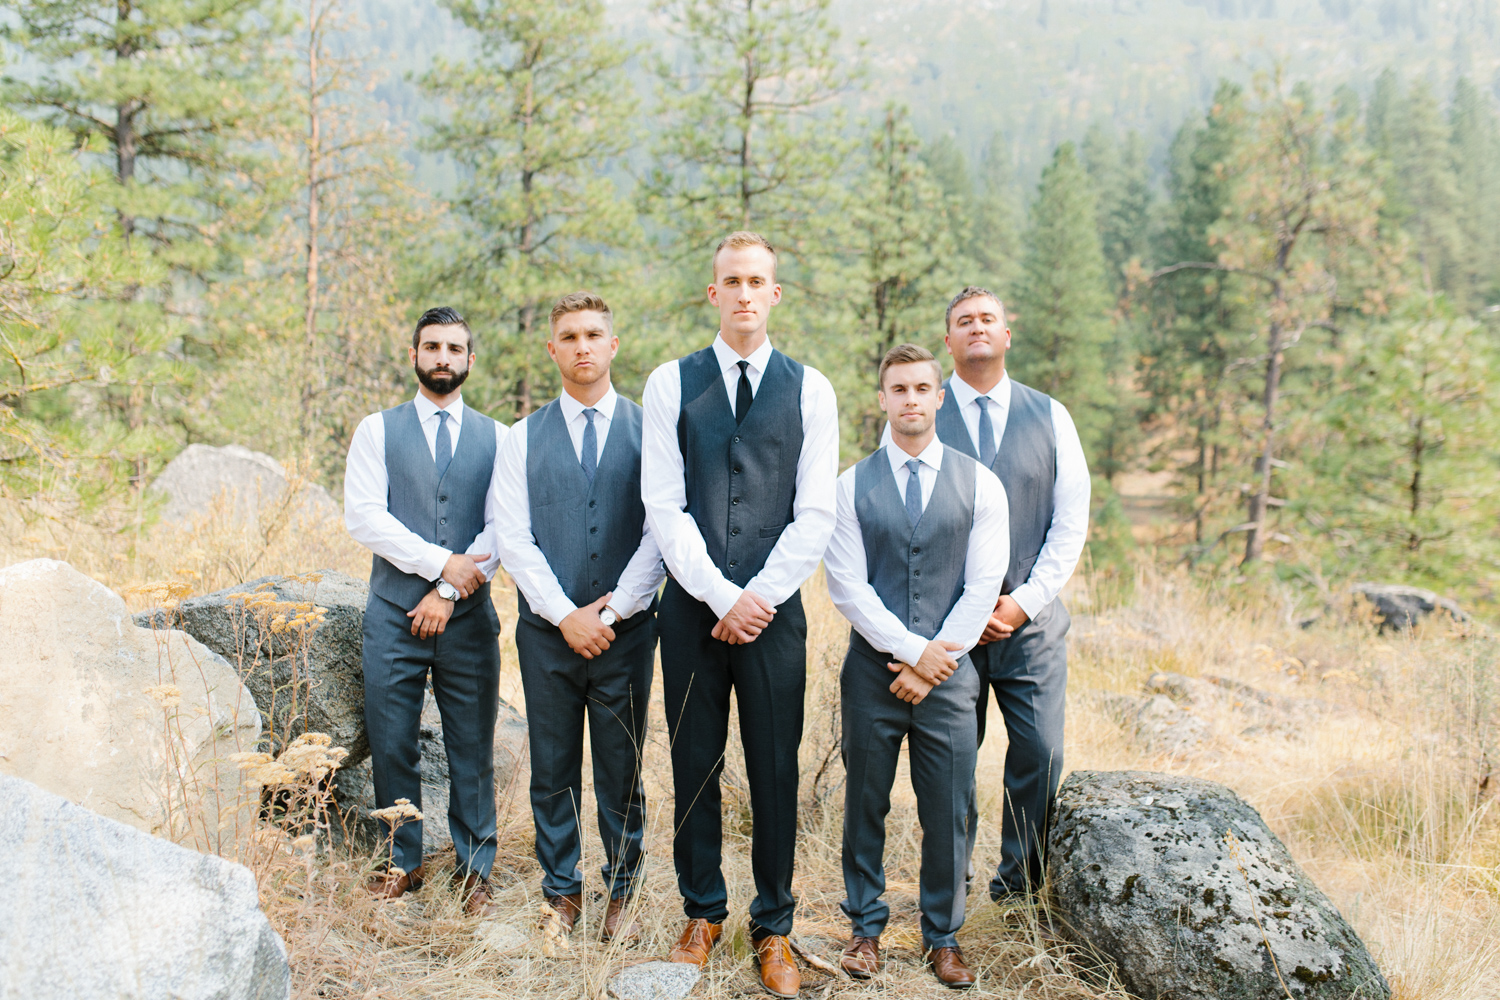 Grey and White Wedding in the Mountains of Leavenworth, Washington | Sleeping Lady | Classic and Timeless Wedding | VSCO | Bridal Party Portraits on a Mountain.jpg-2746.jpg